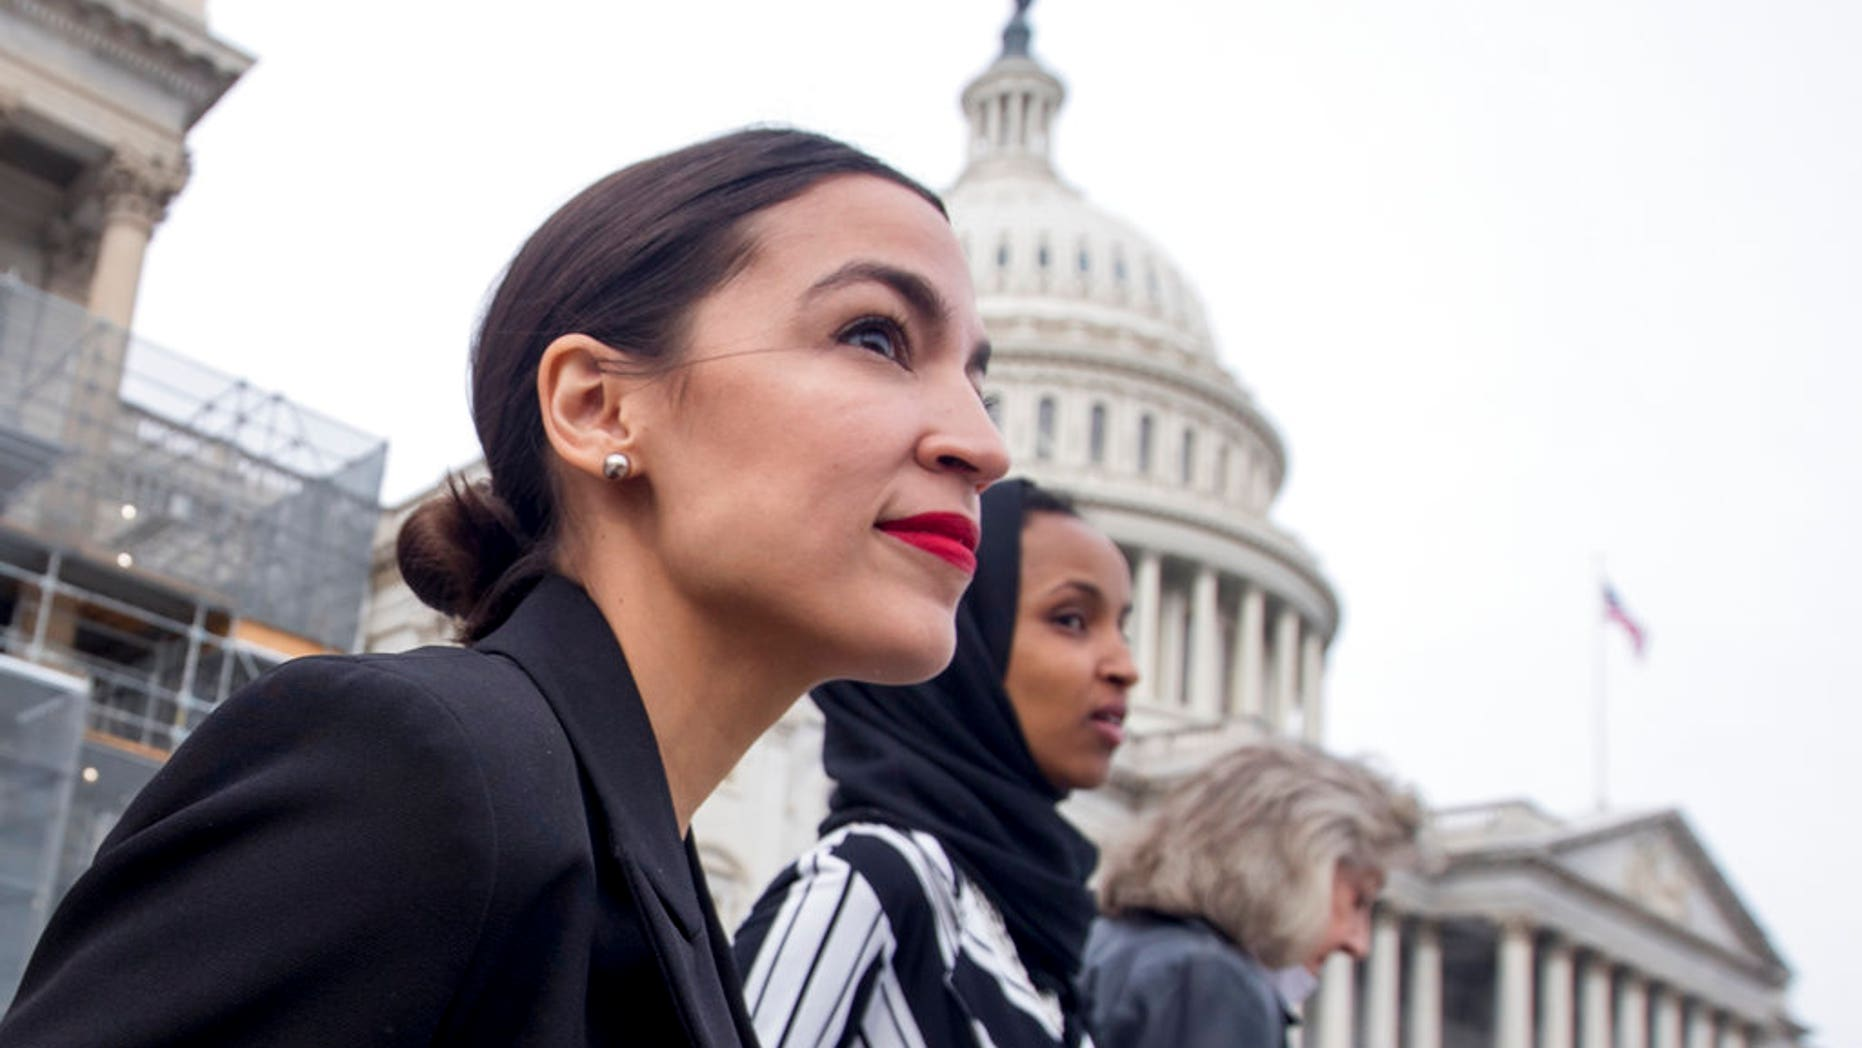 Dems Looking to Bring Ocasio-Cortez Under Control